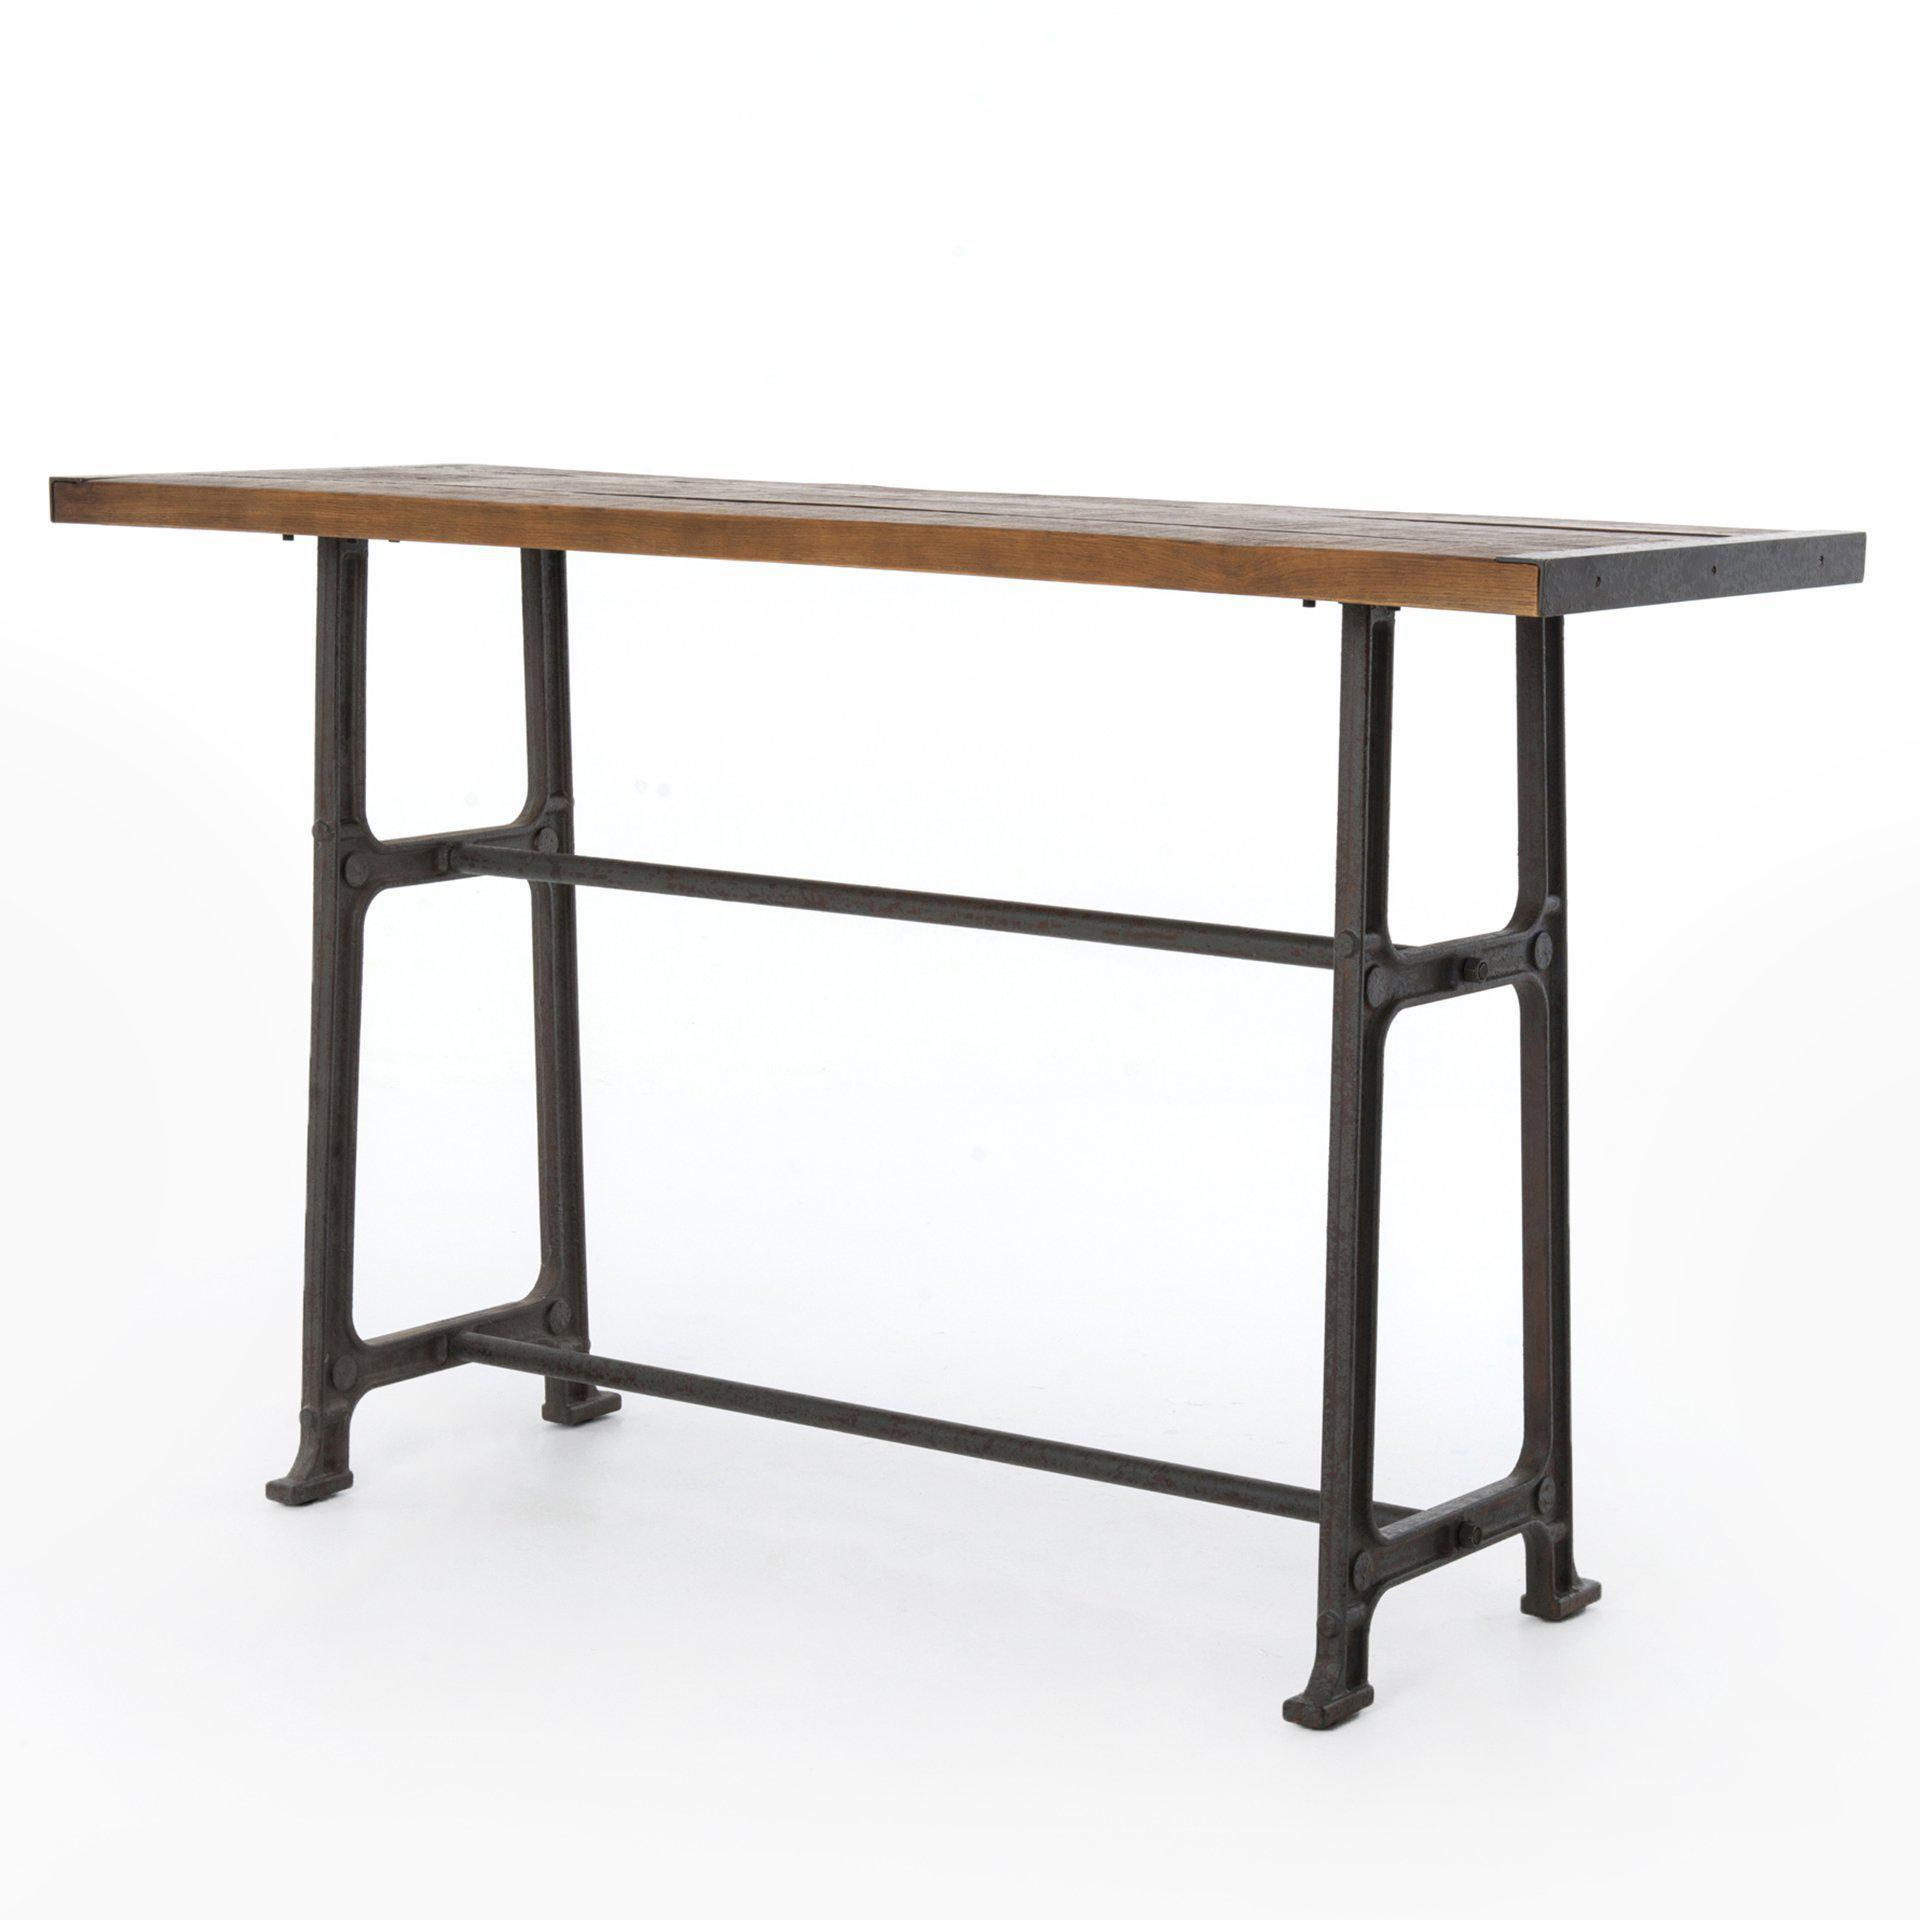 Erdos + Ko -Bar/Counter Table-Alison Bar Table